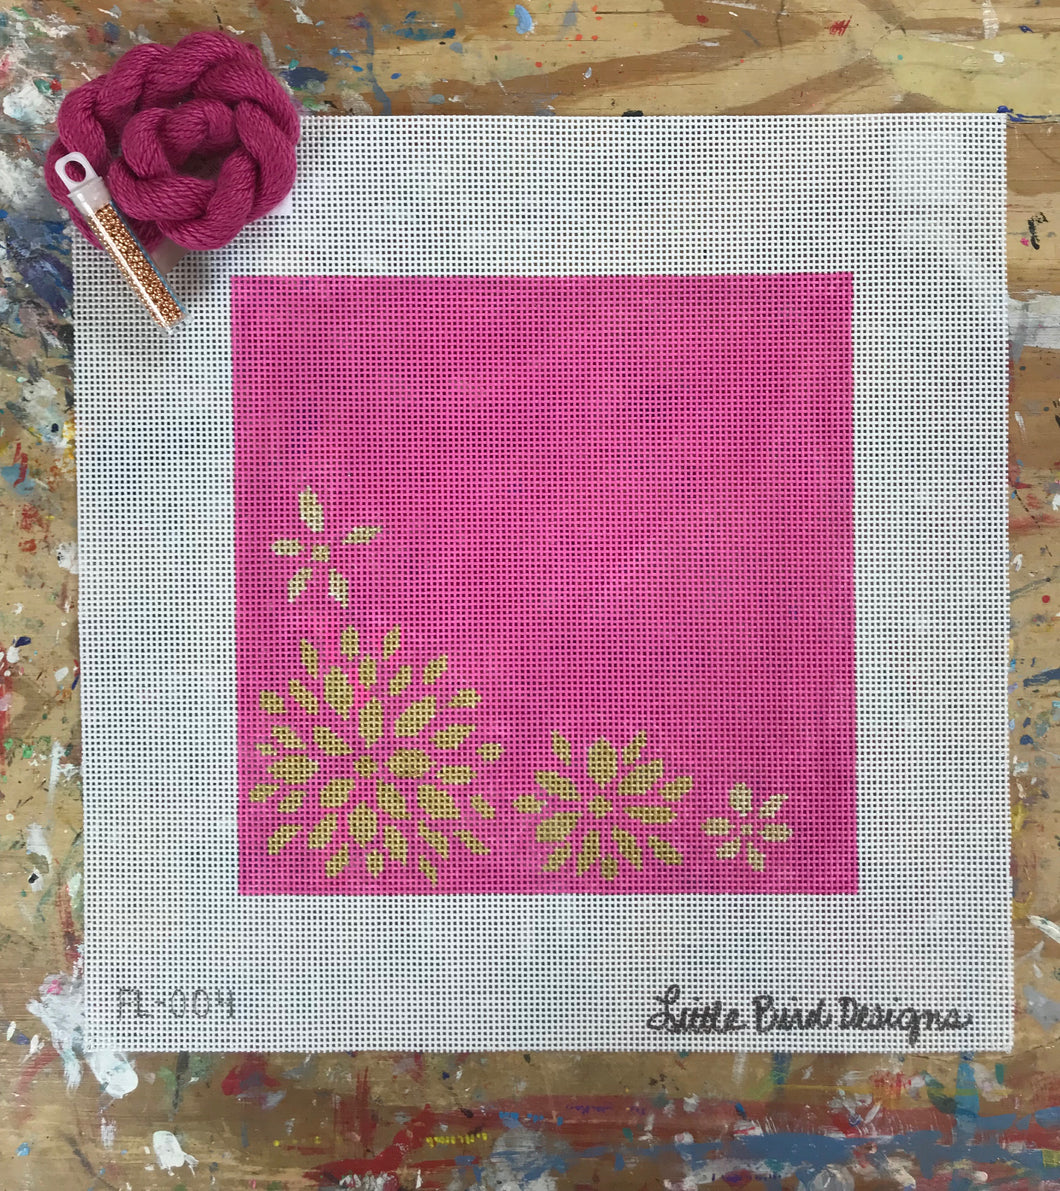 FL-004 Gold flowers on hot pink background